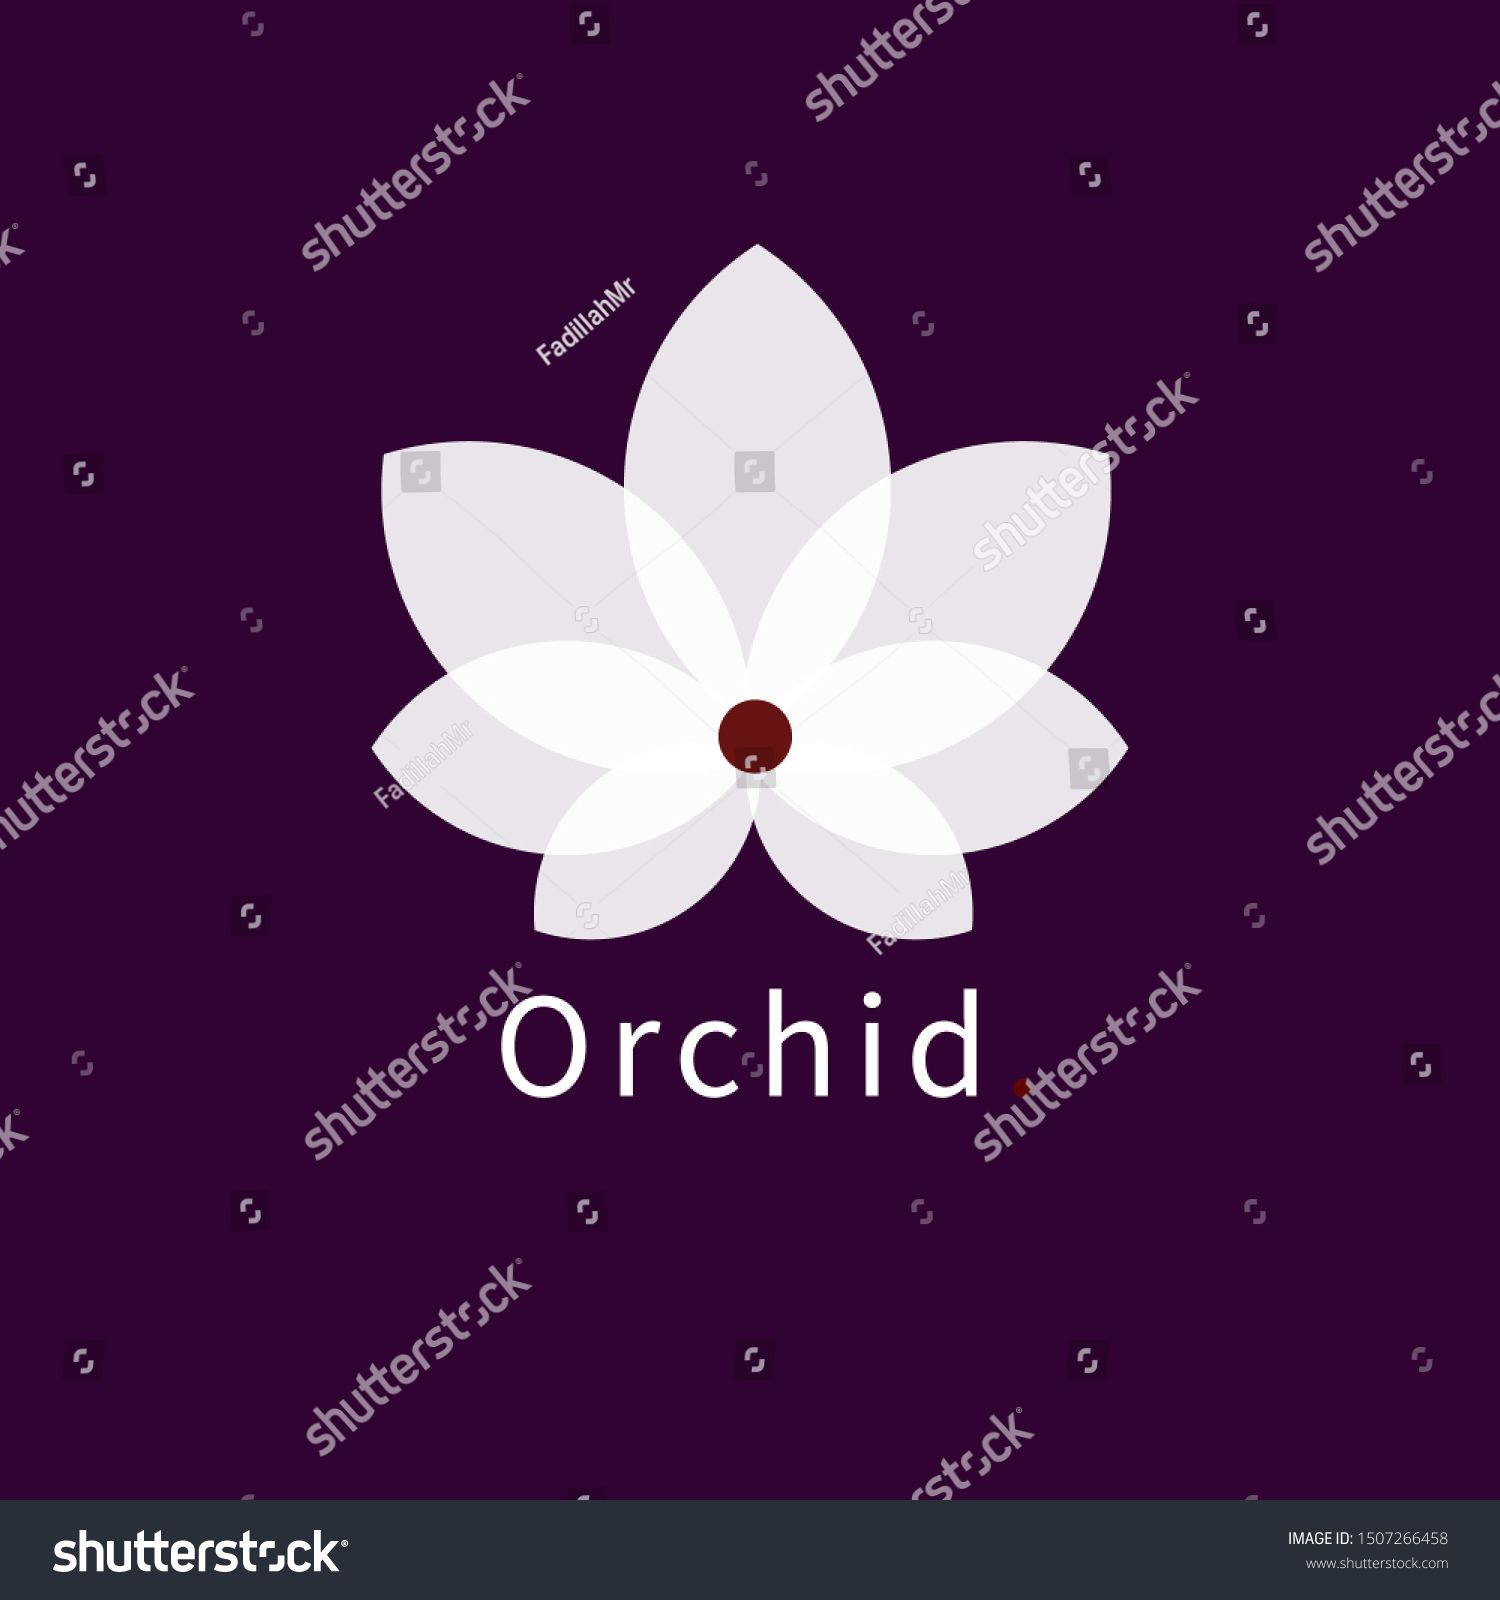 Amazing Beautiful Orchid Flower Logo Orchid Drawing Beautiful Orchids Orchid Flower